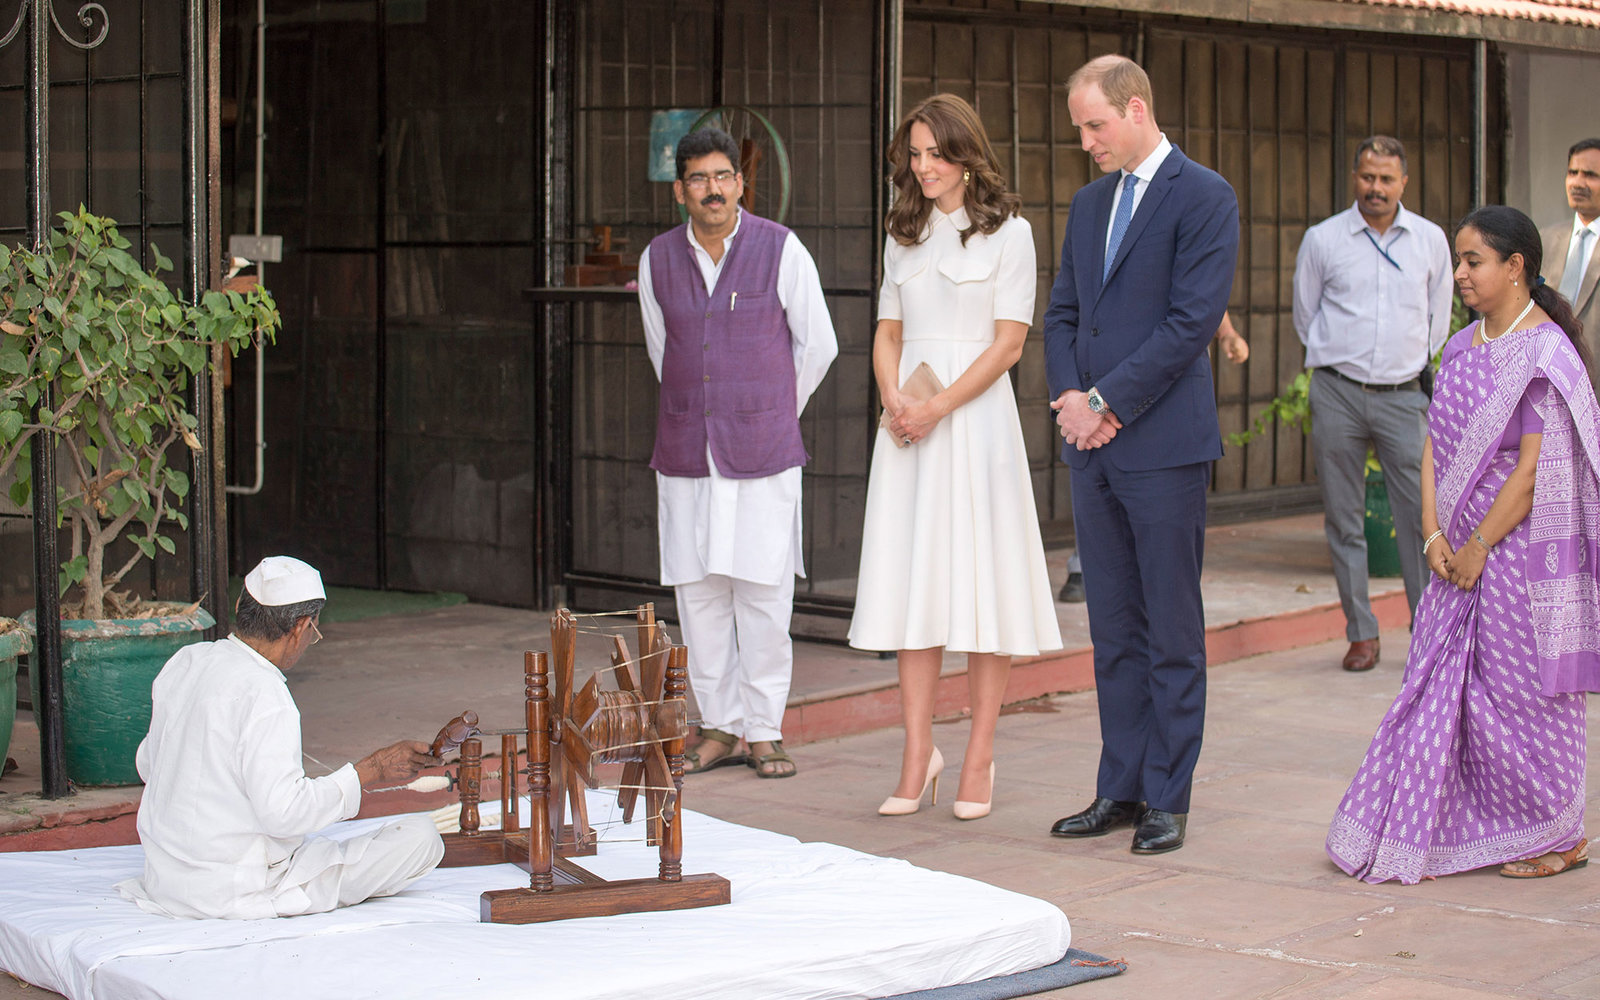 NEW DELHI, INDIA - APRIL 11: Catherine, Duchess of Cambridge and Prince William, Duke of Cambridge visit Gandhi Smriti, a museum located in Old Birla House, where Mahatma Gandhi, India's founding father, spent the last few years of his life, on April 11,